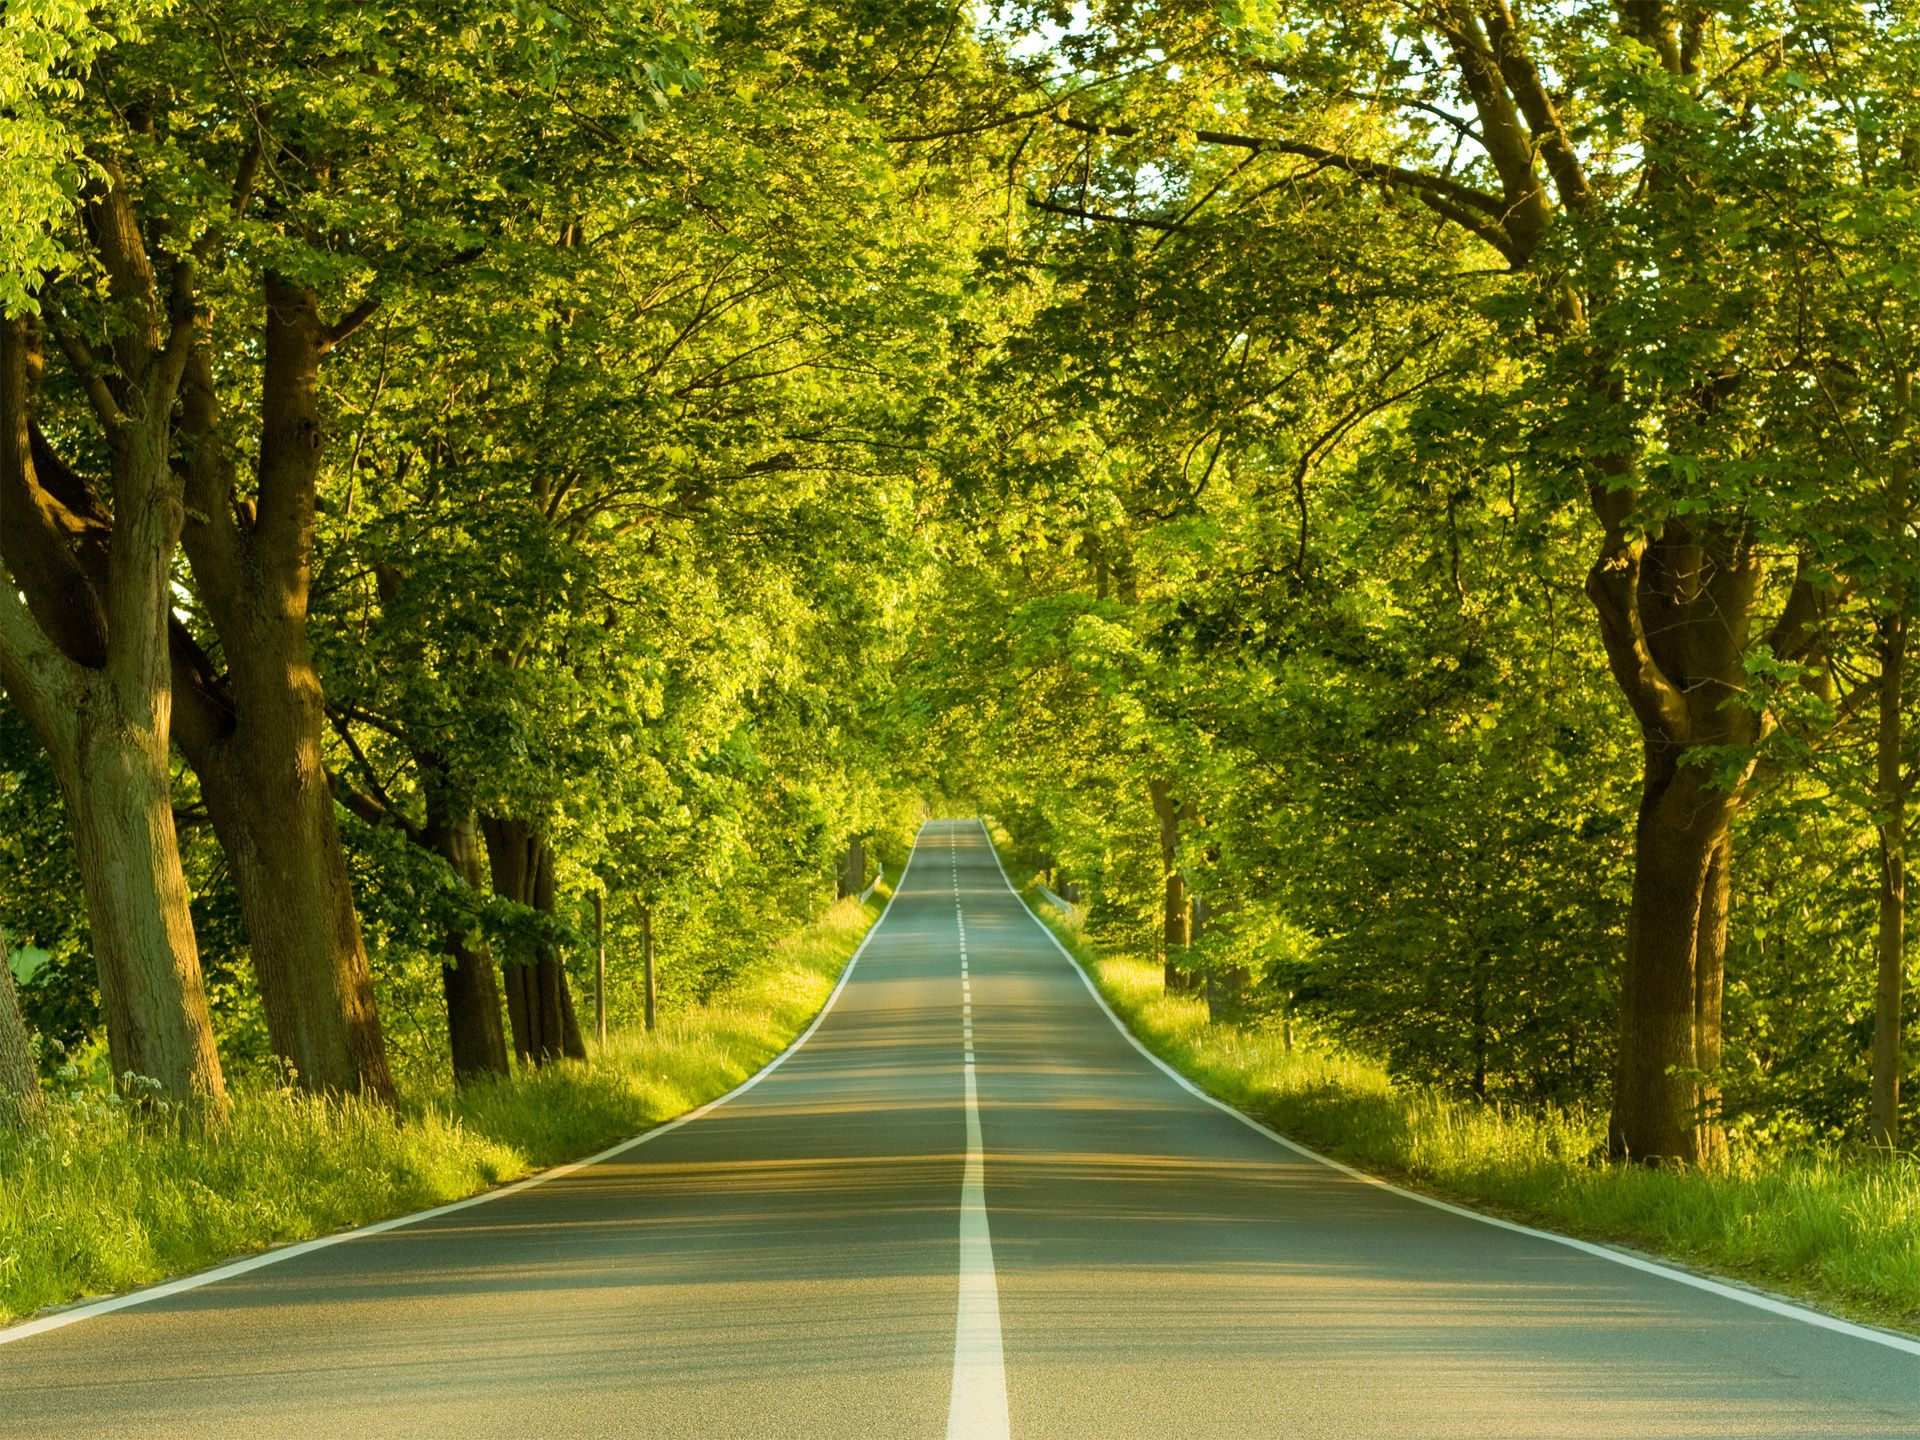 Road To Nowhere Forest Nowhere Road Trees Landscape Nature Hd Scenery Wallpaper Nature Desktop Nature Wallpaper